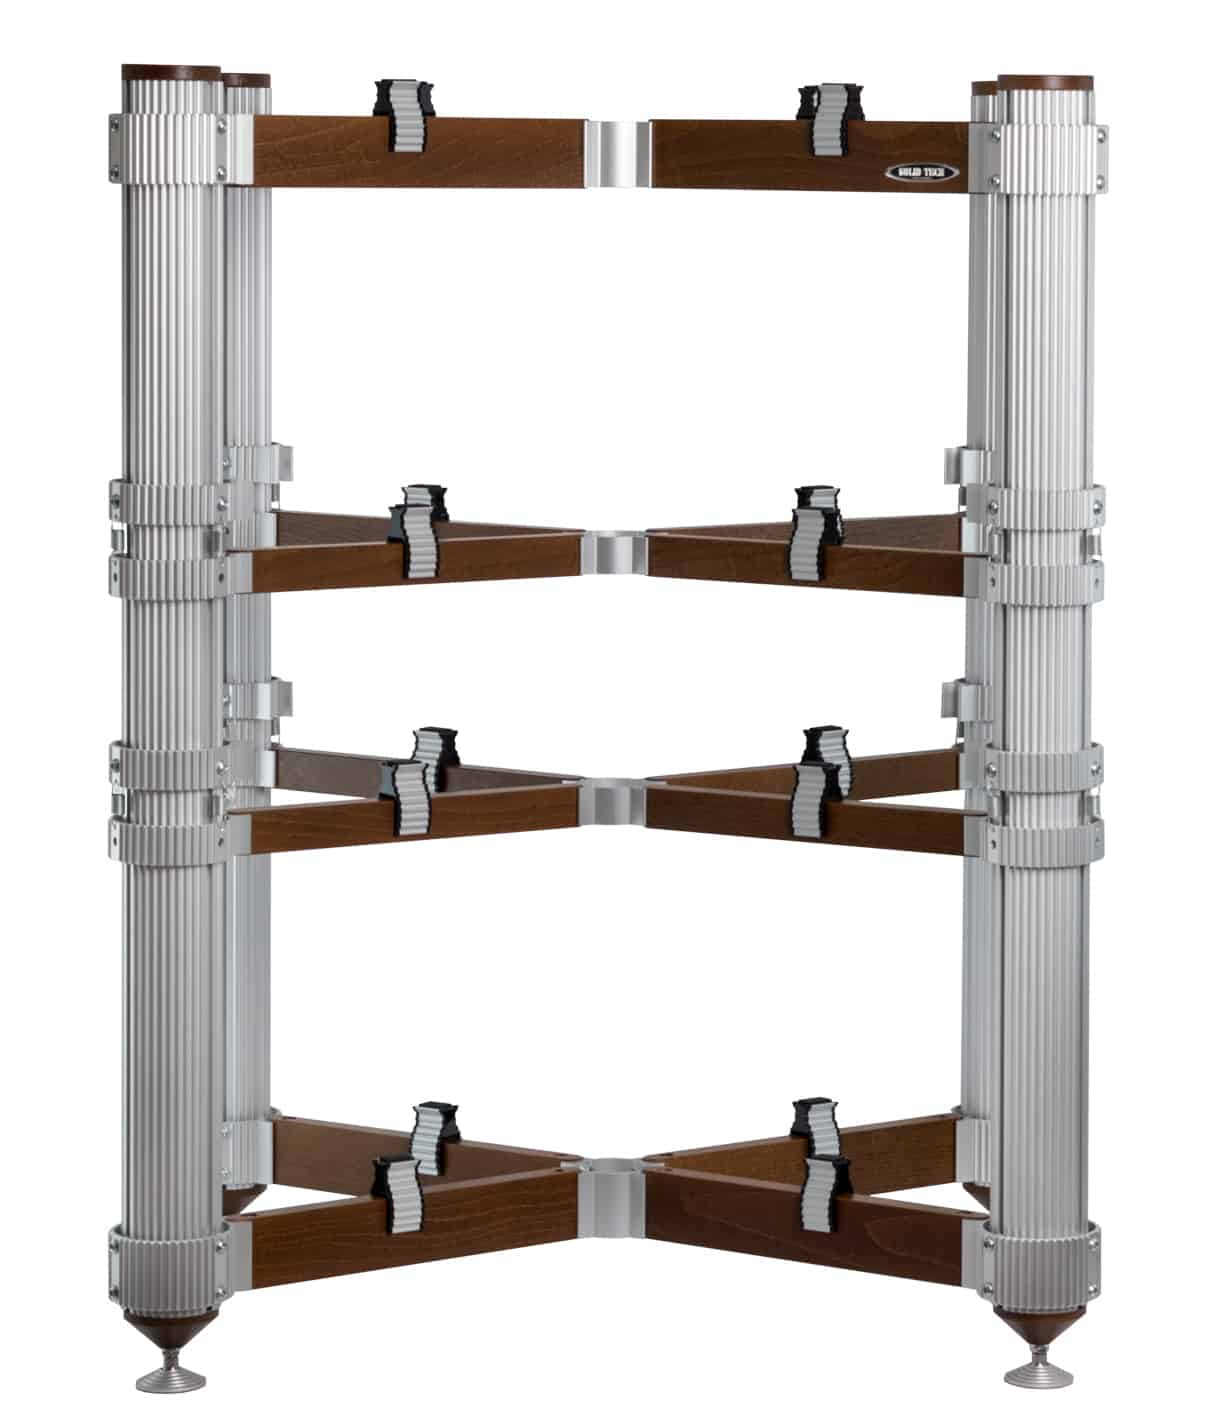 Rack of Silence 4 Reference in Silver and Walnut stained beech Image